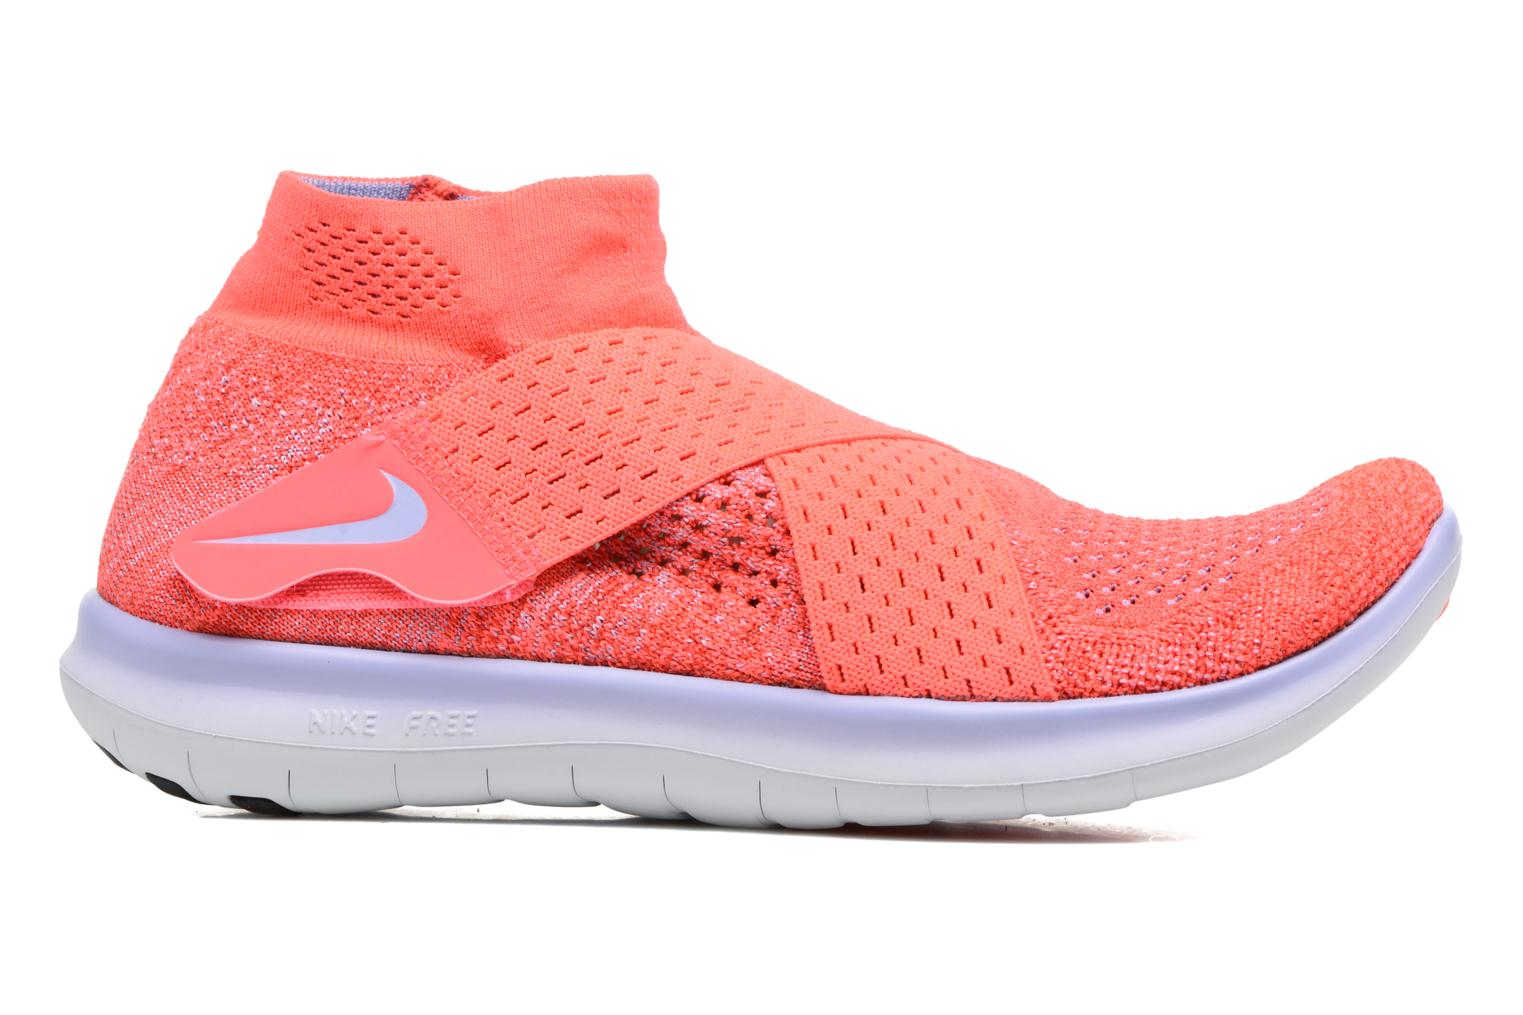 W Nike Free Rn Motion Fk 2017 Solar Red/Light Thistle-University Red